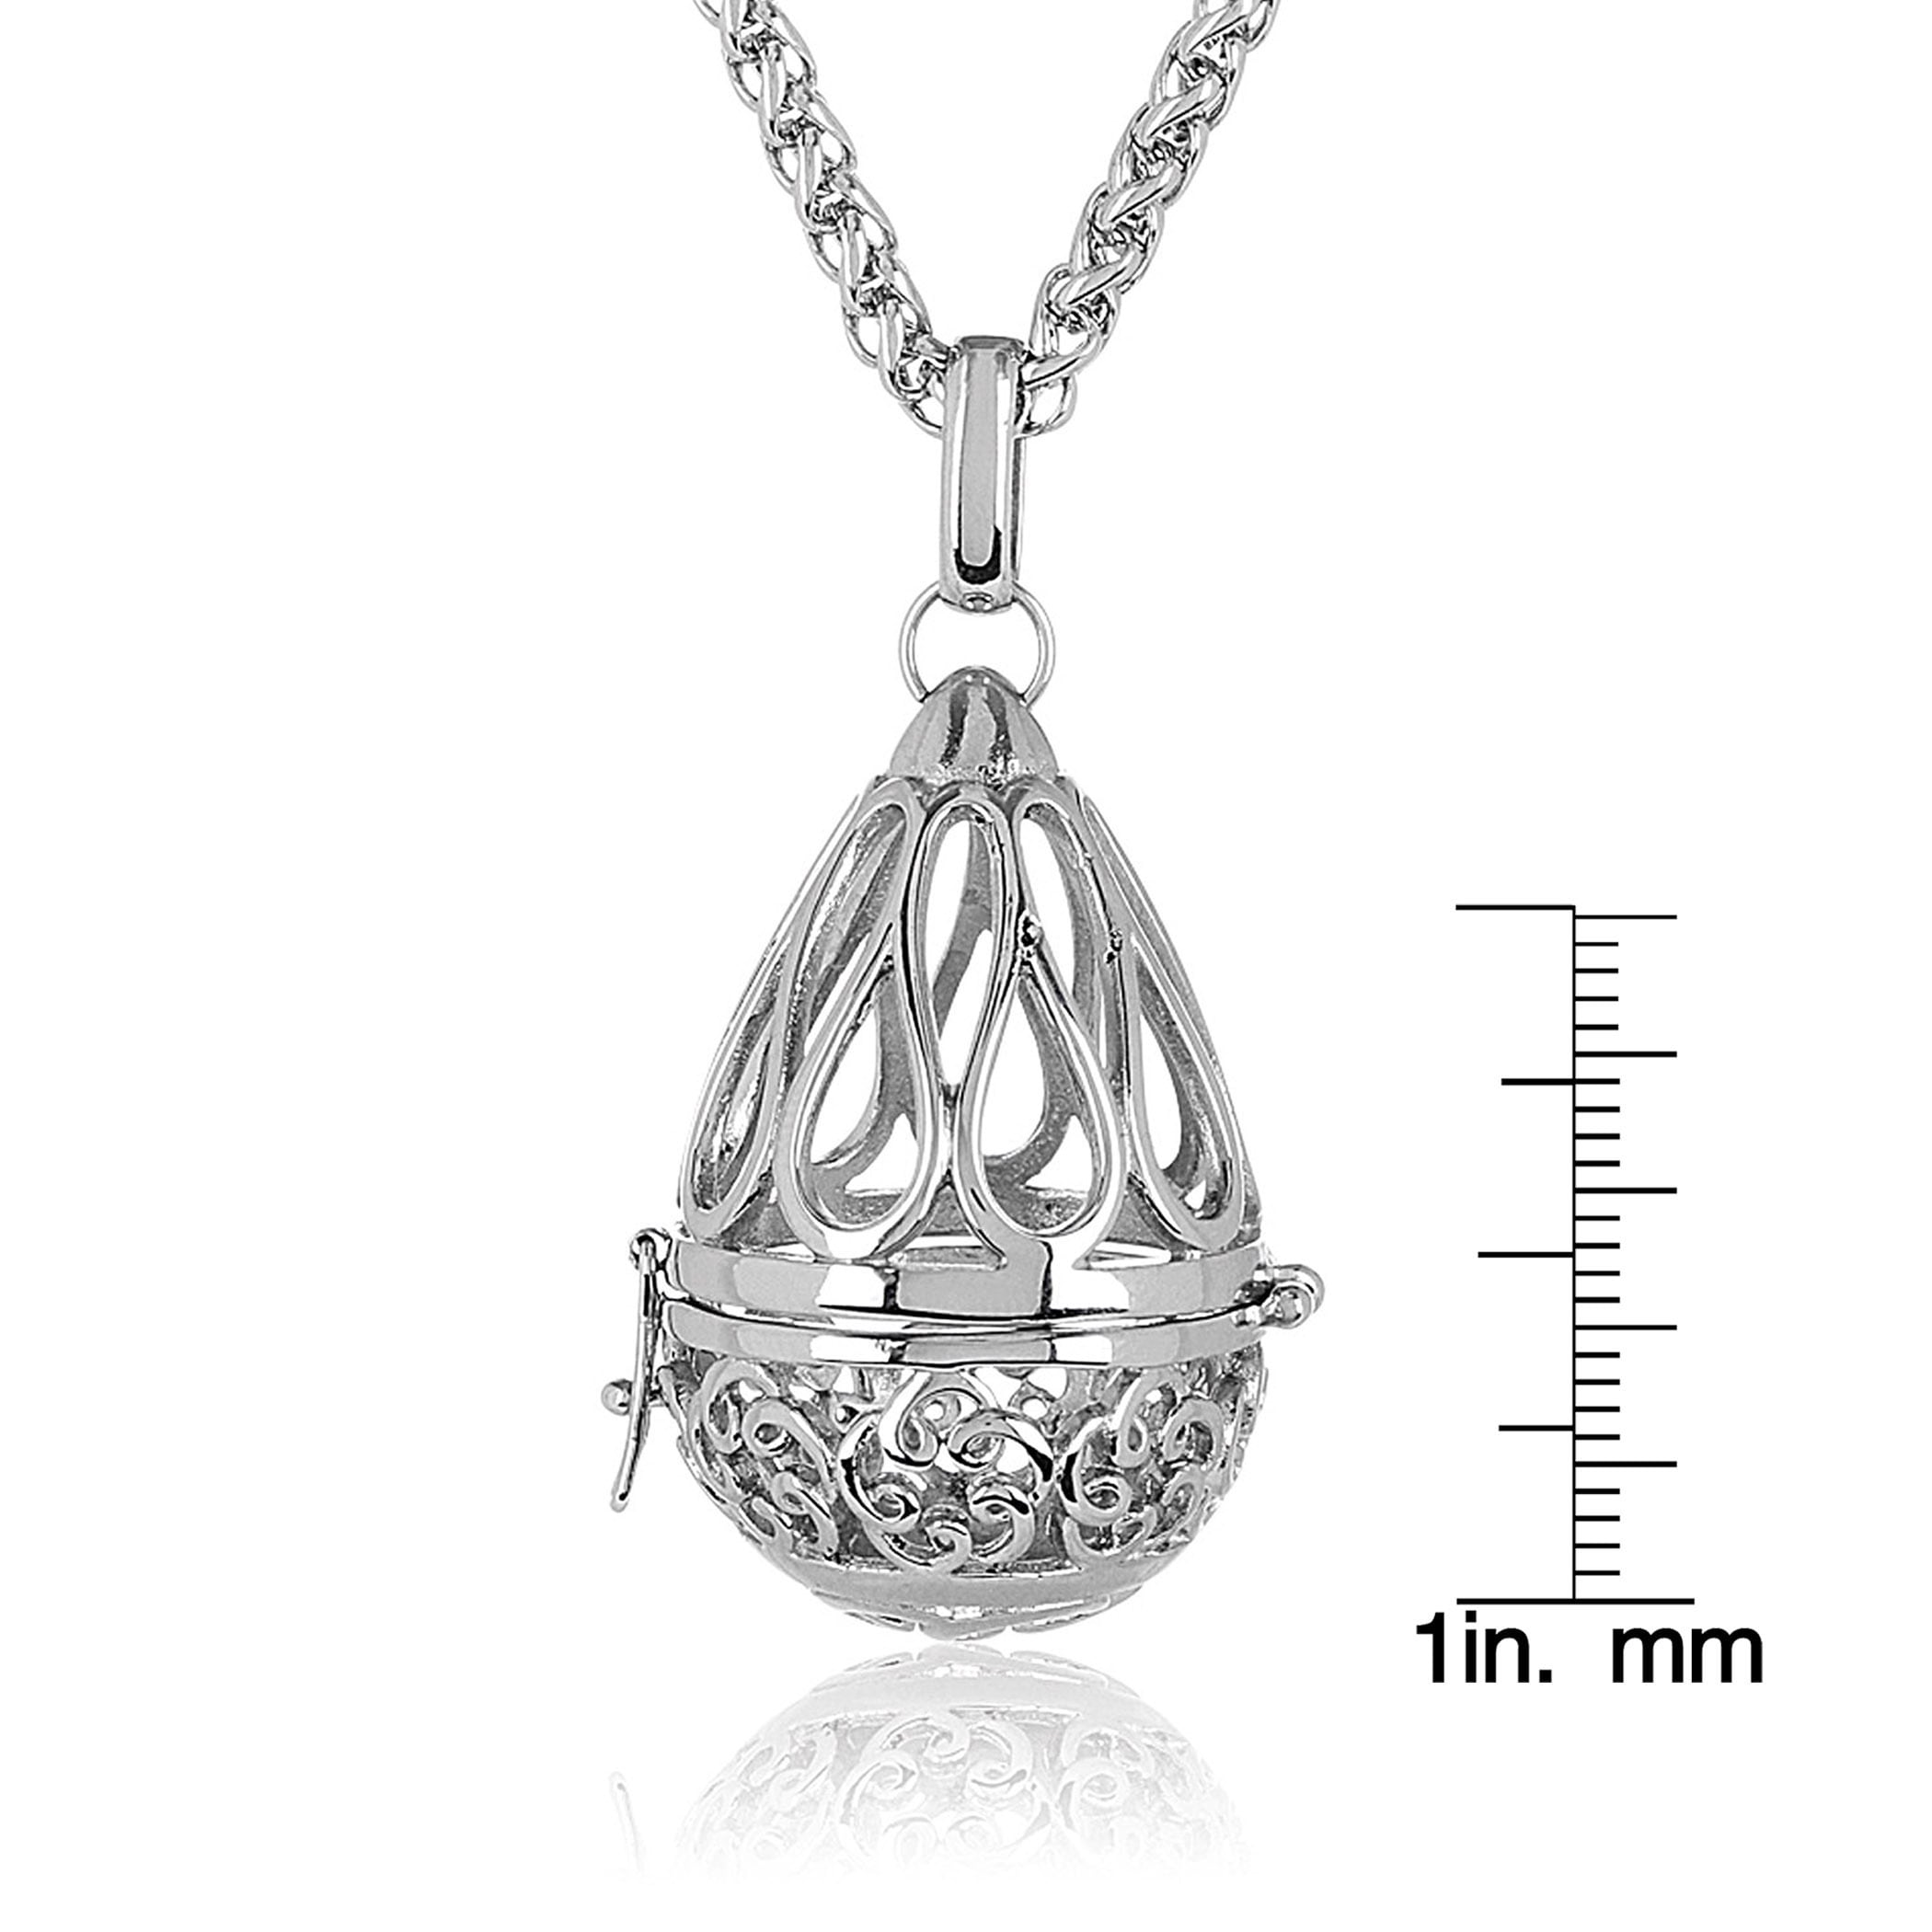 ebay lockets sterling locket chain english hallmark metal huge book pin victorian double silver antique